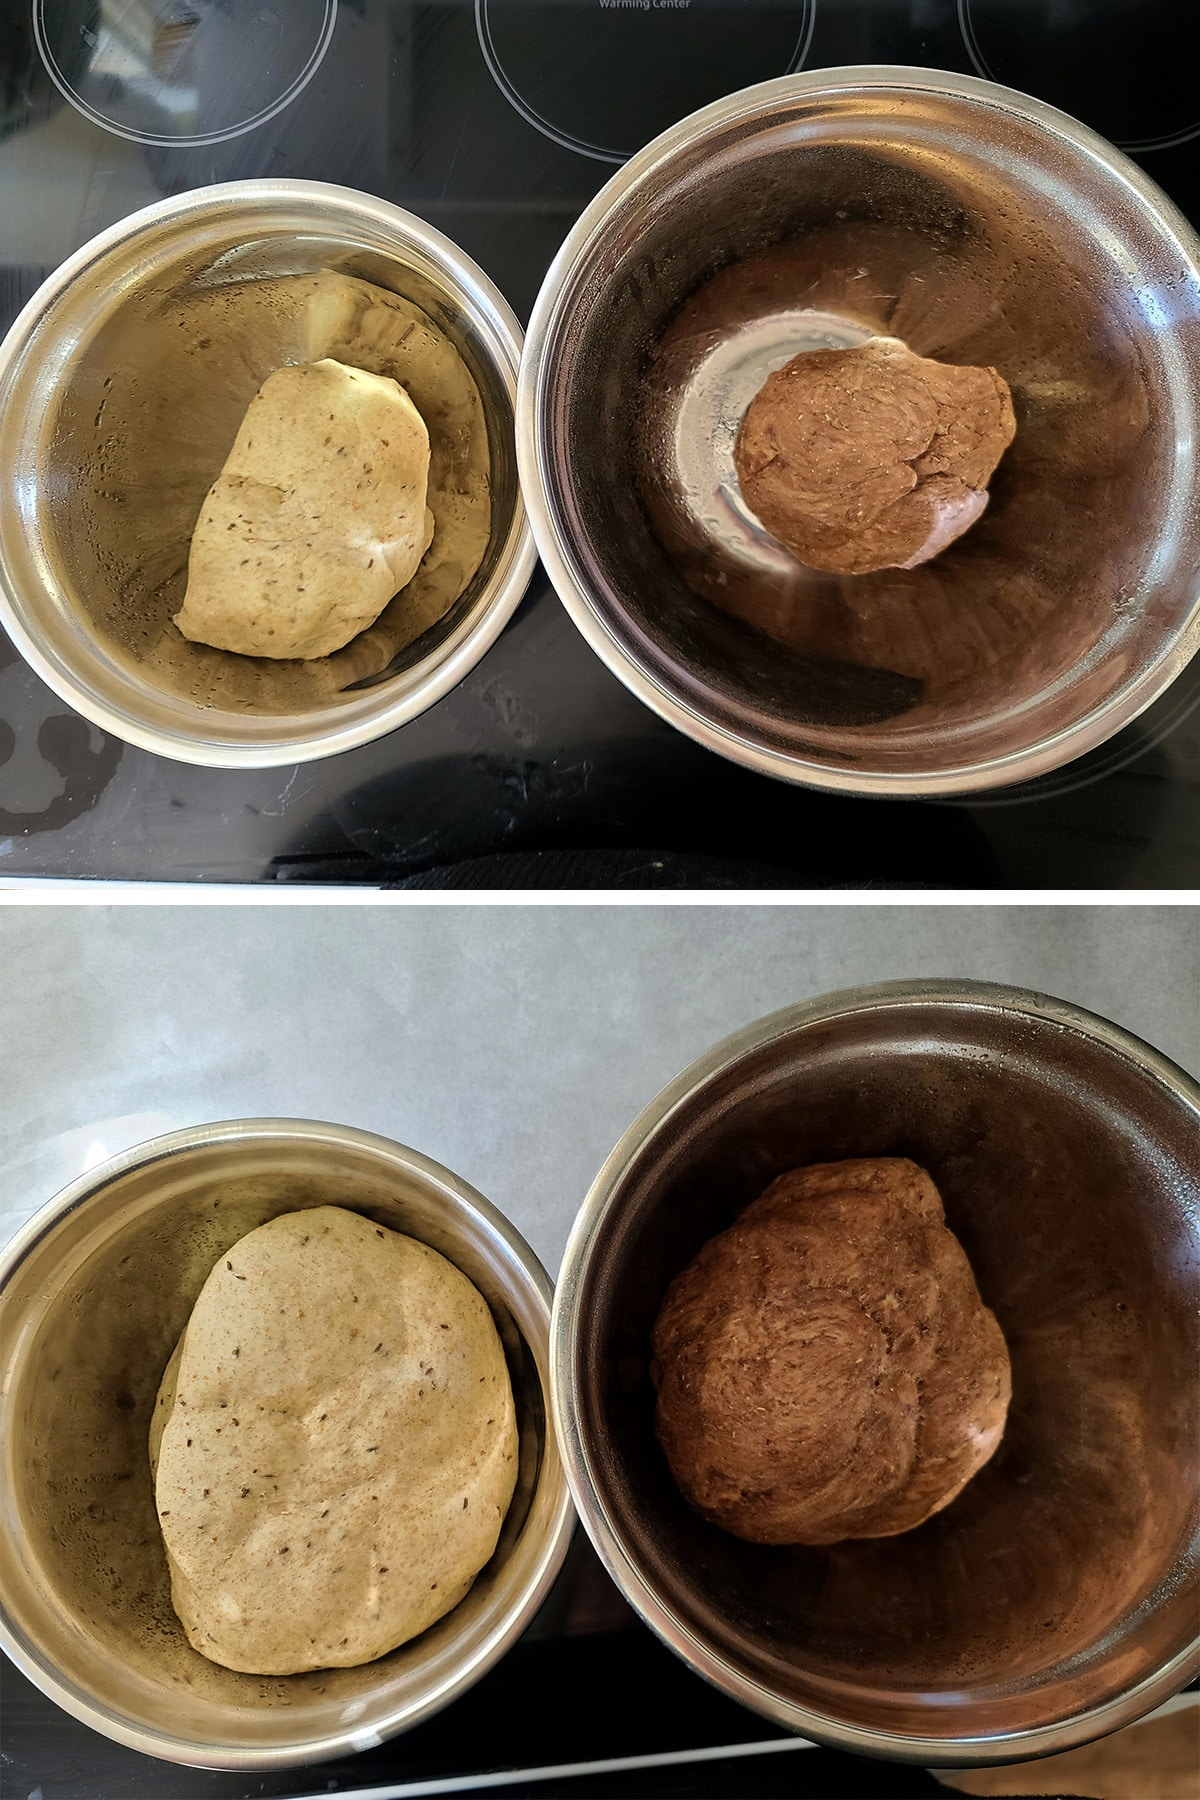 The two doughs, before and after rising.